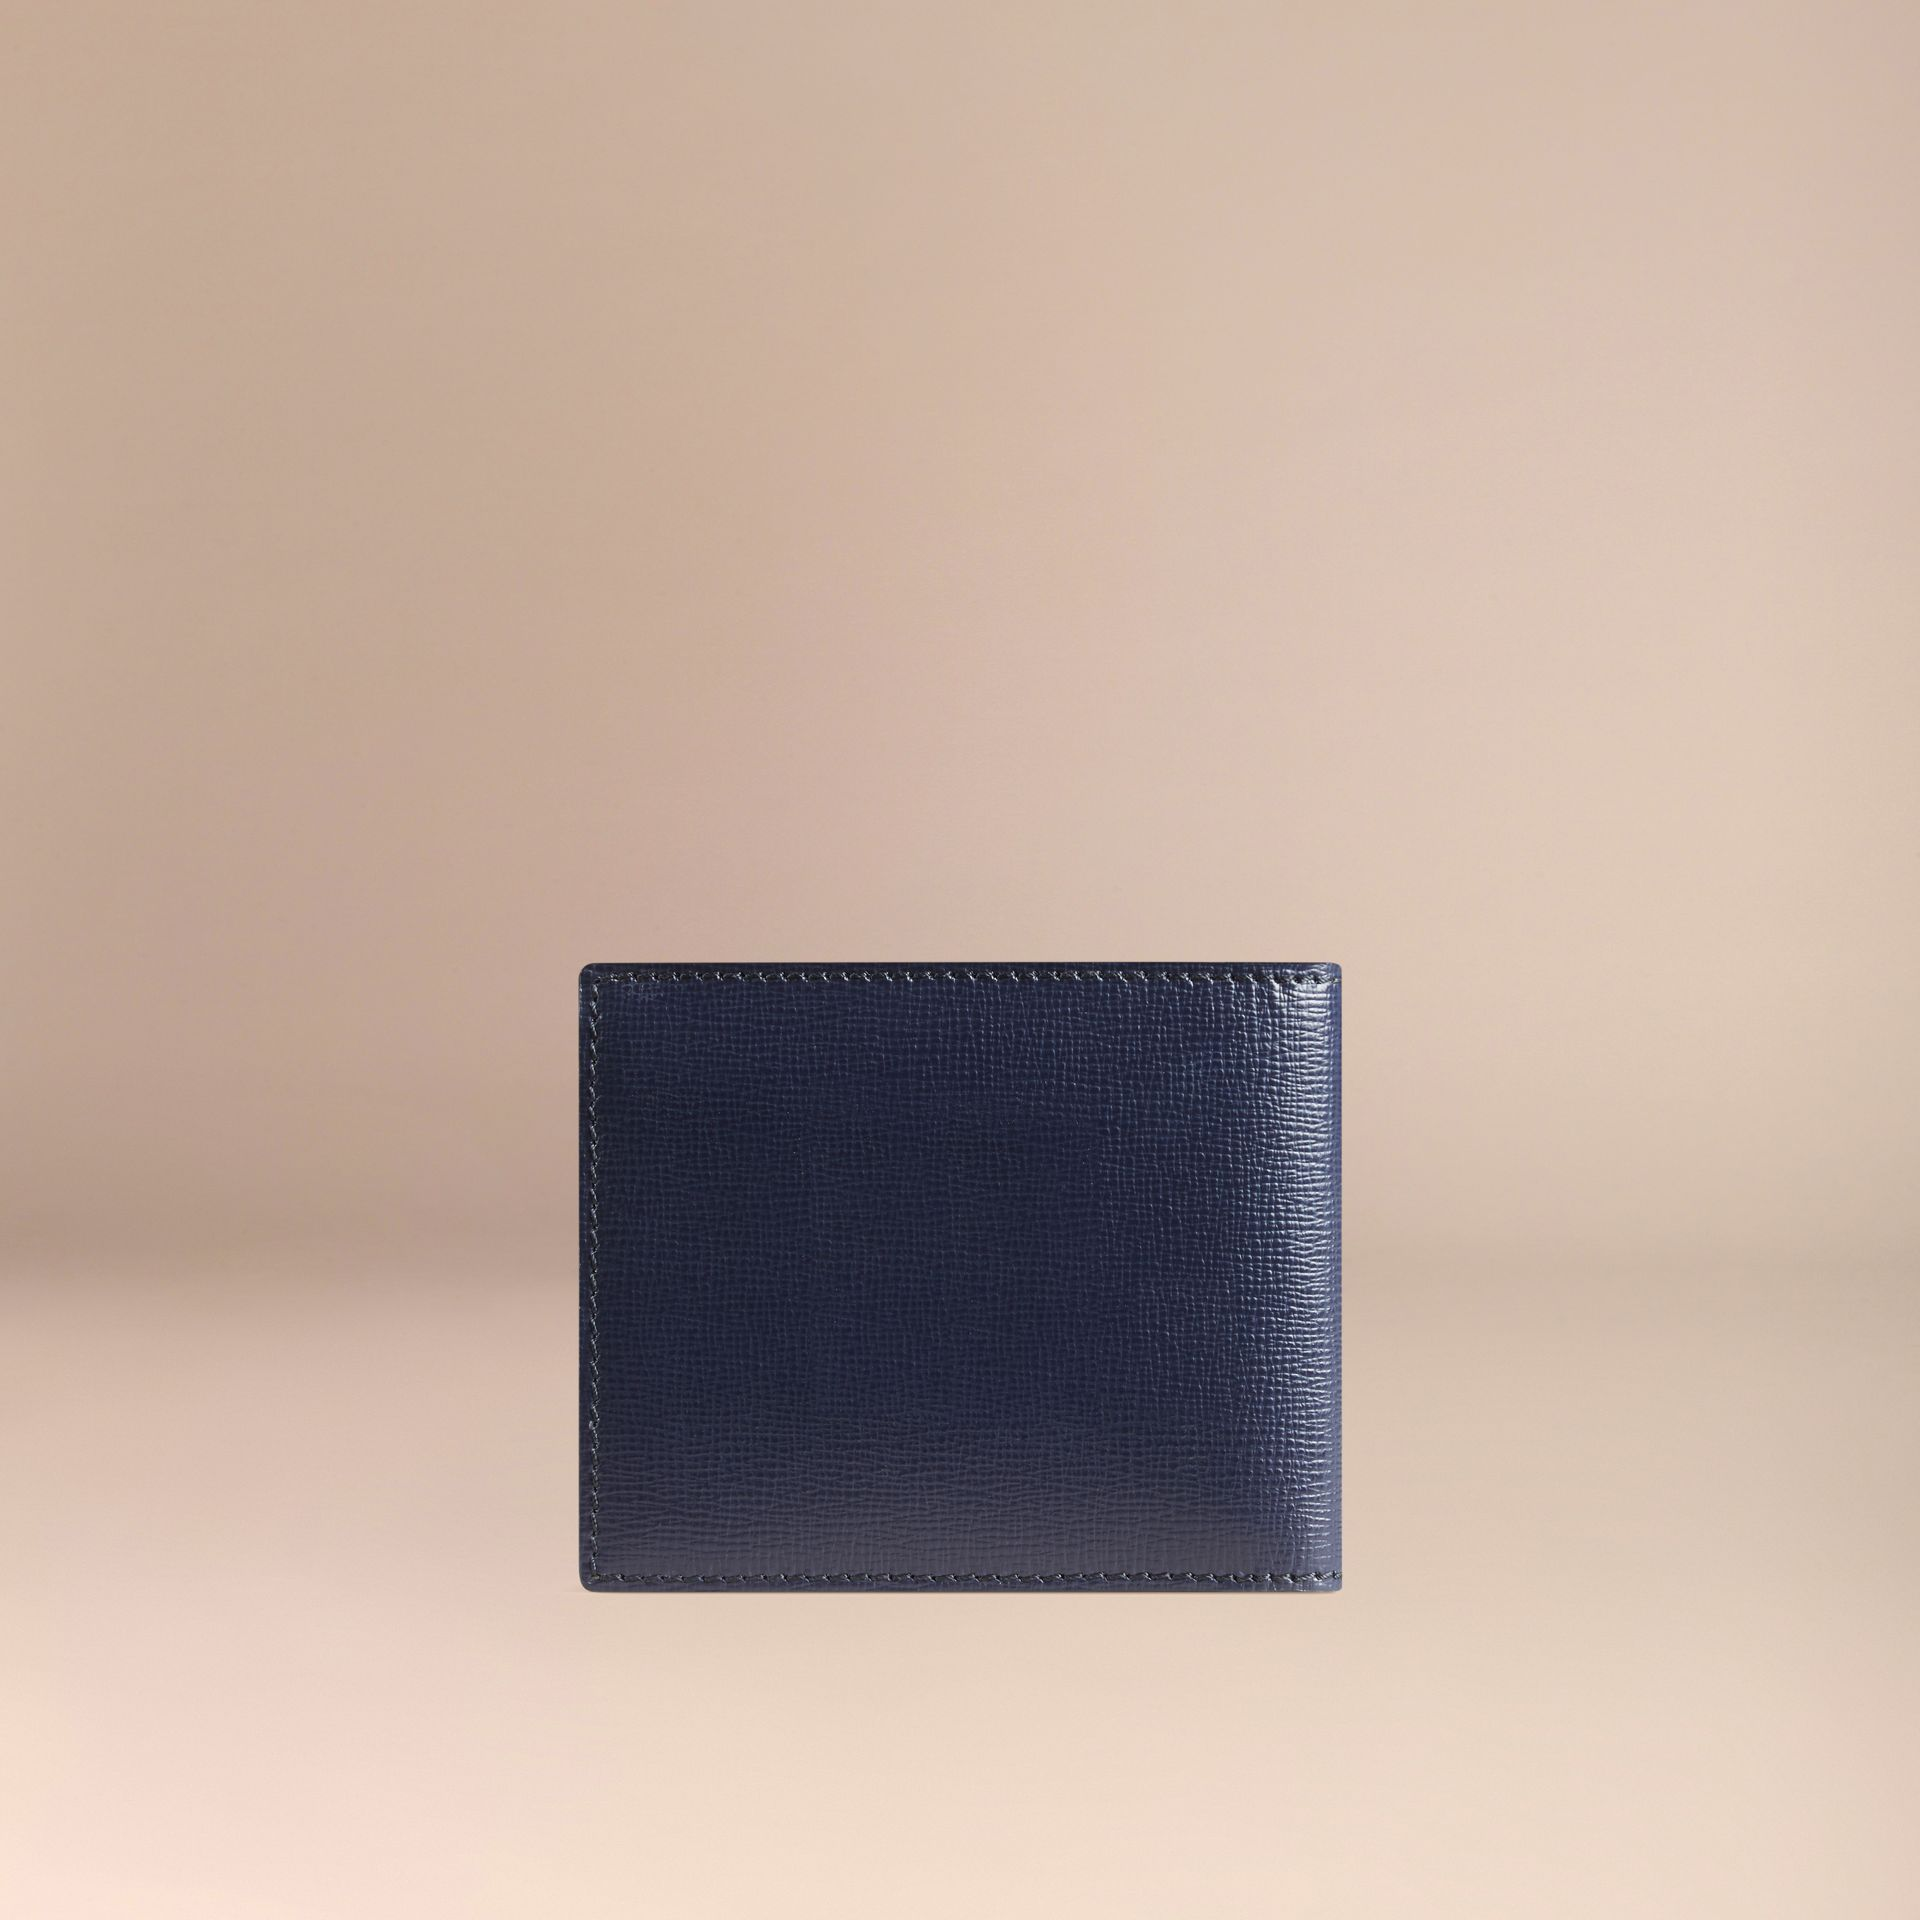 London Leather ID Wallet in Dark Navy - Men | Burberry - gallery image 3